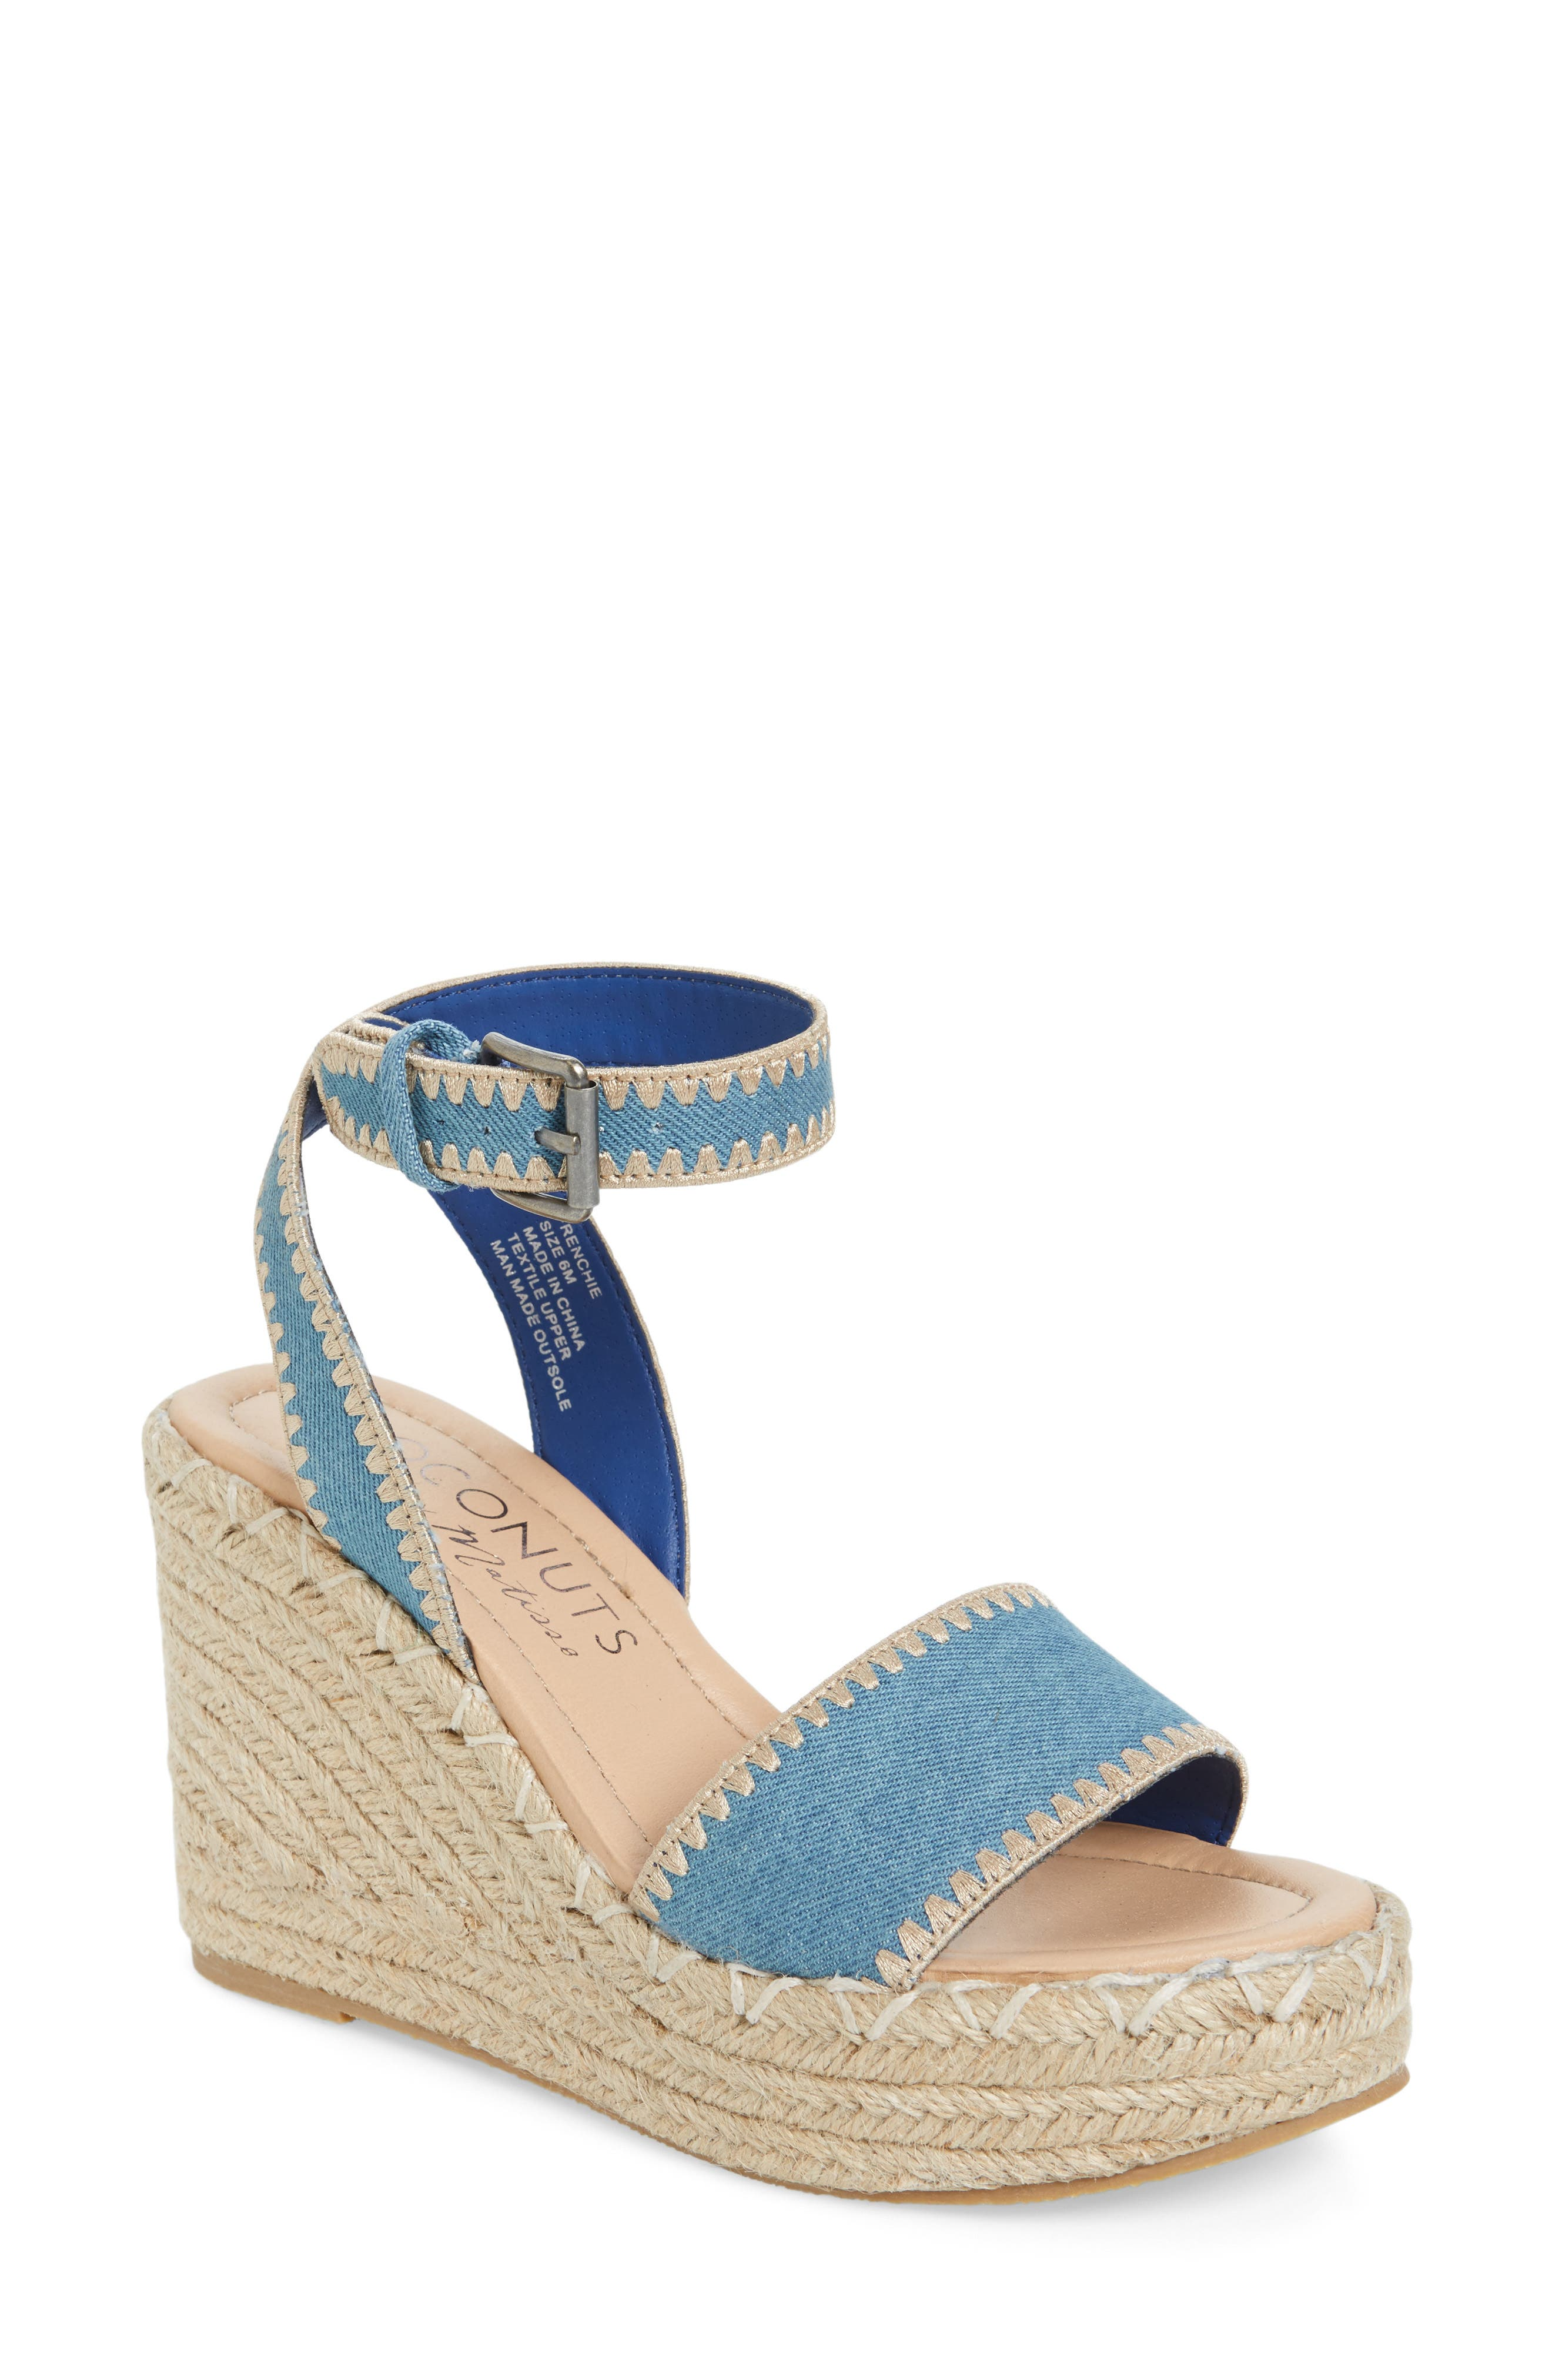 Main Image - Coconuts by Matisse Frenchie Wedge Sandal (Women)